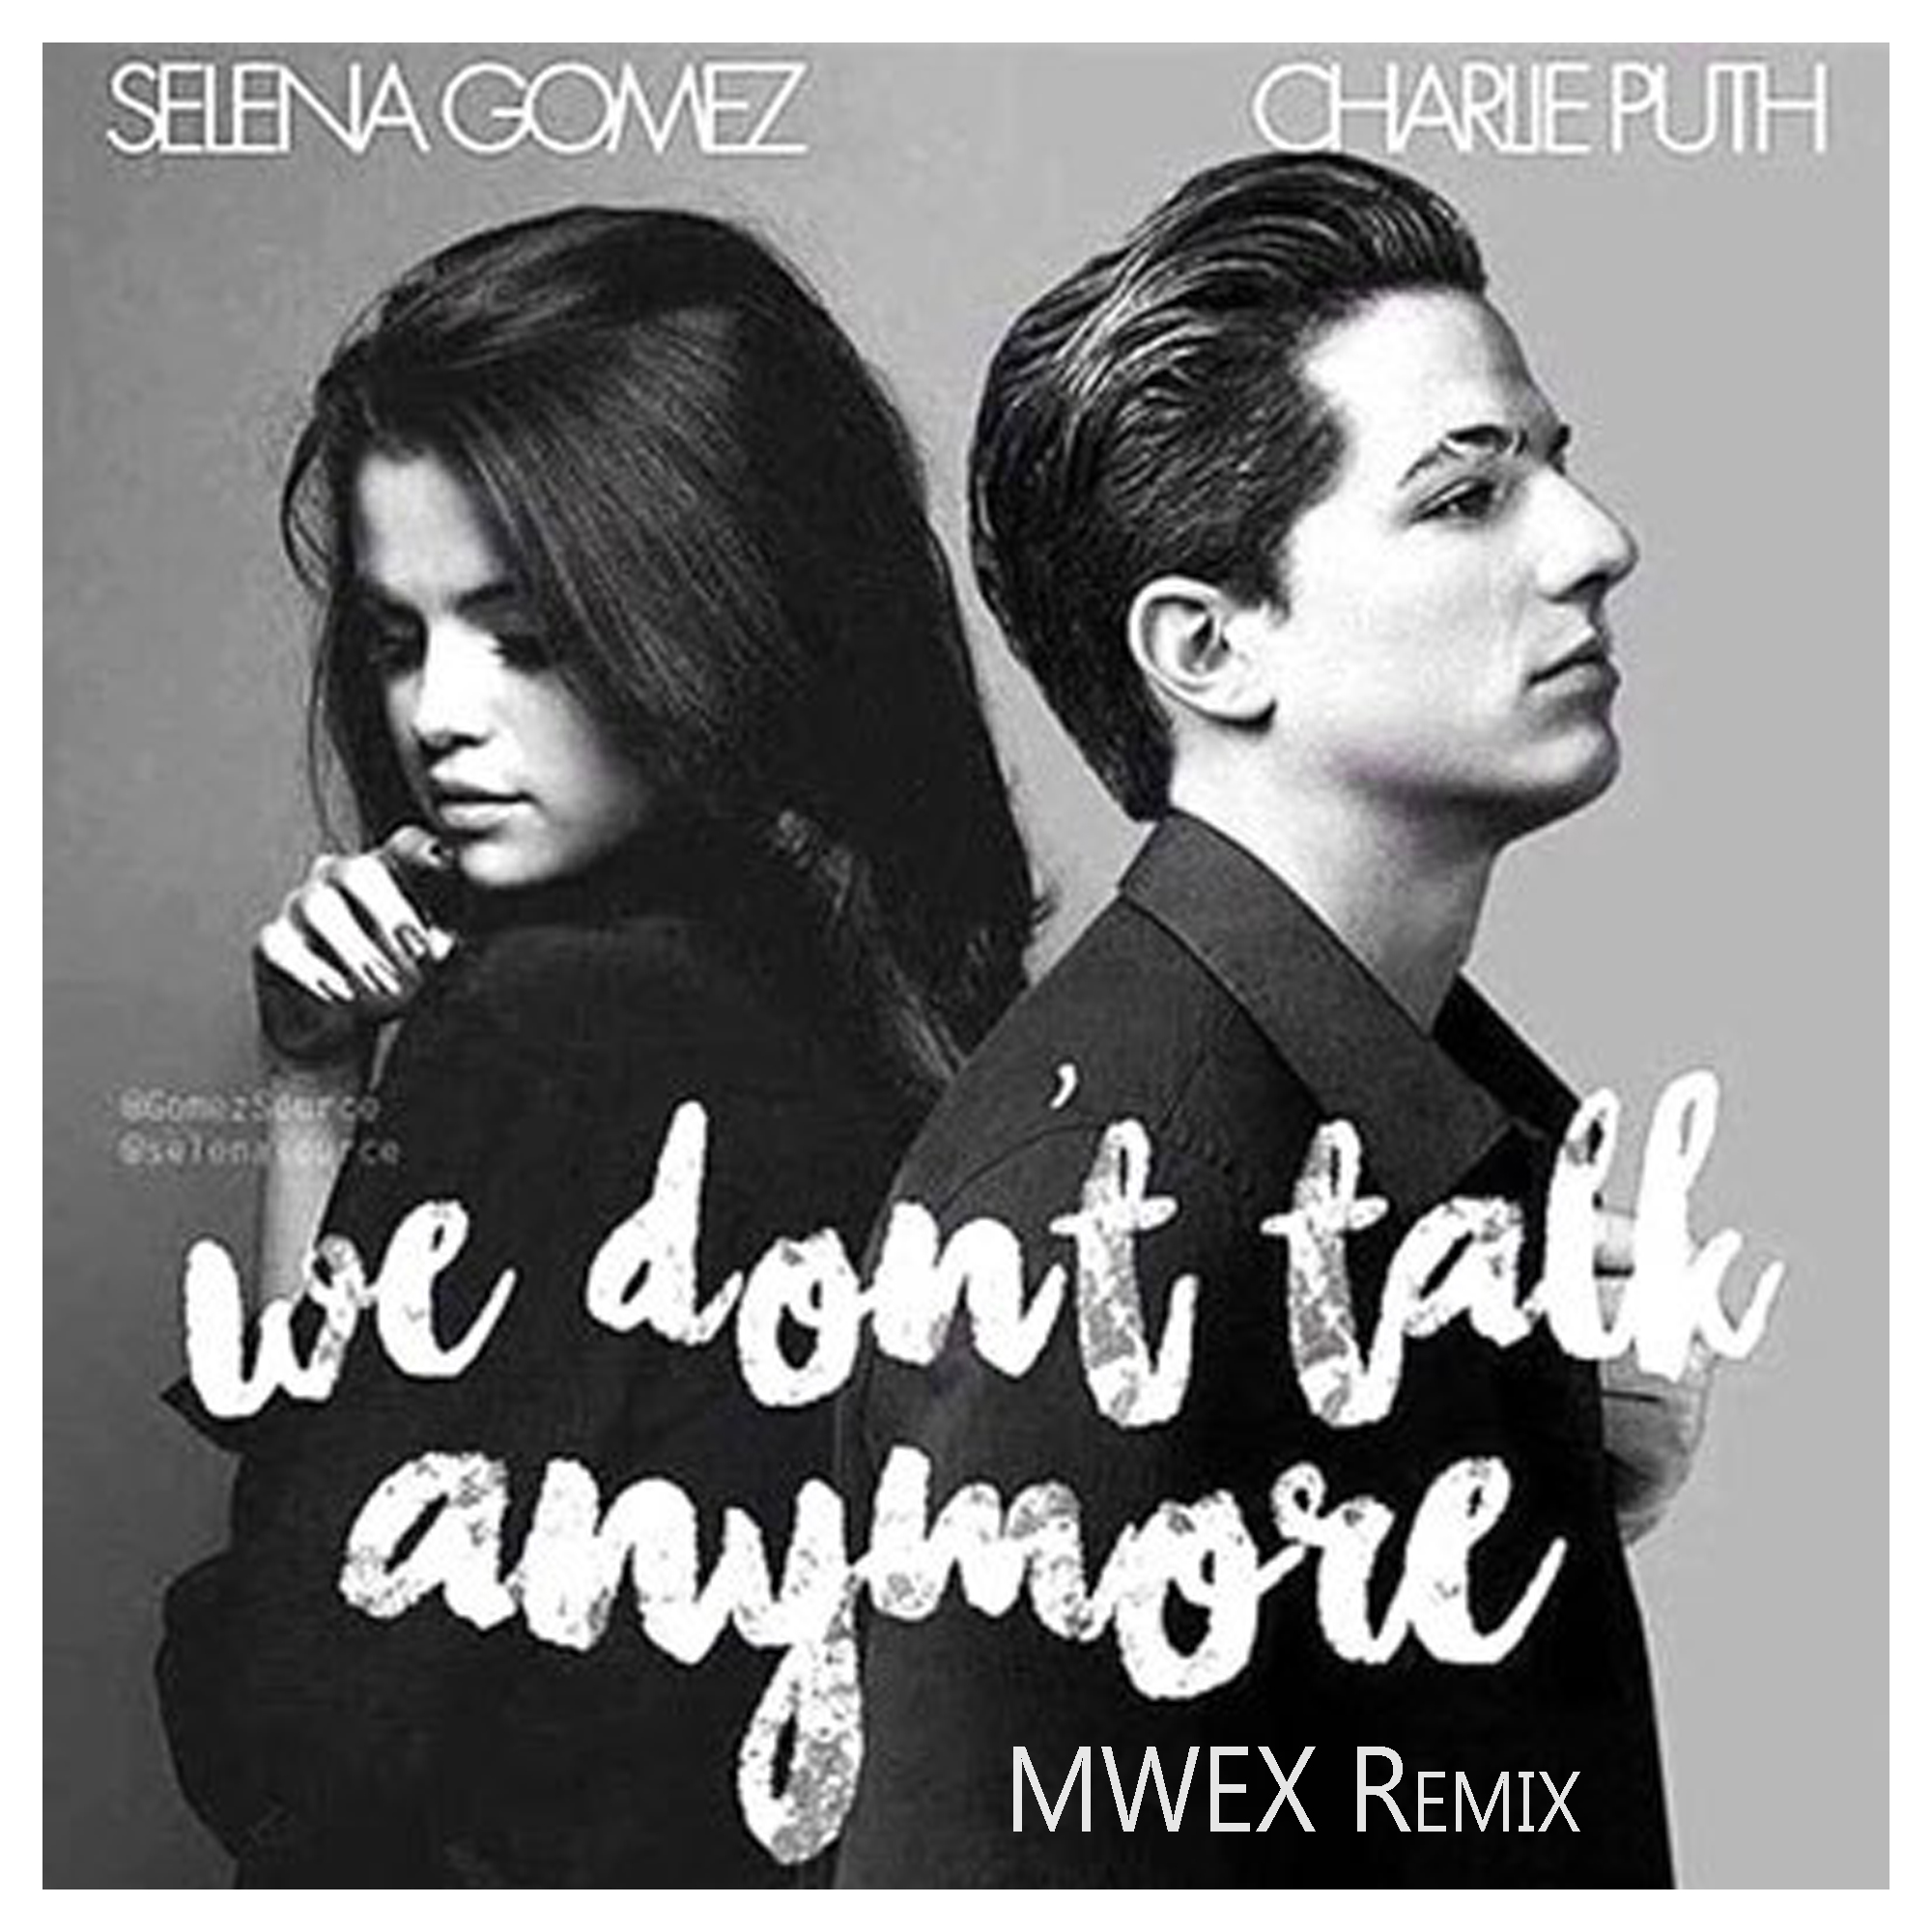 Charlie puth we don't talk anymore ft. Selena gomez (mwex remix.